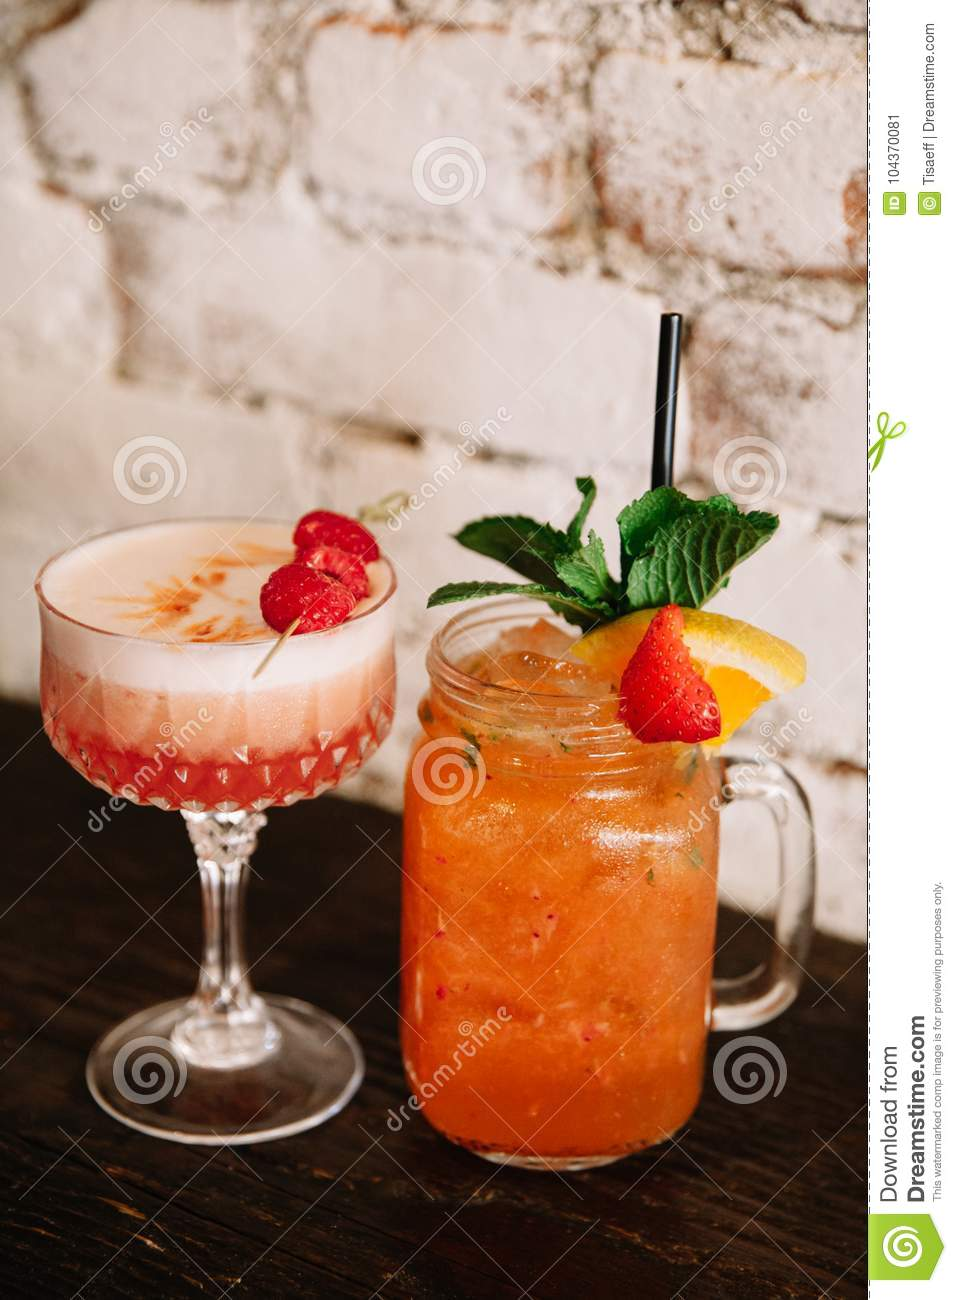 Two alcoholic cocktails garnished with berries against the white